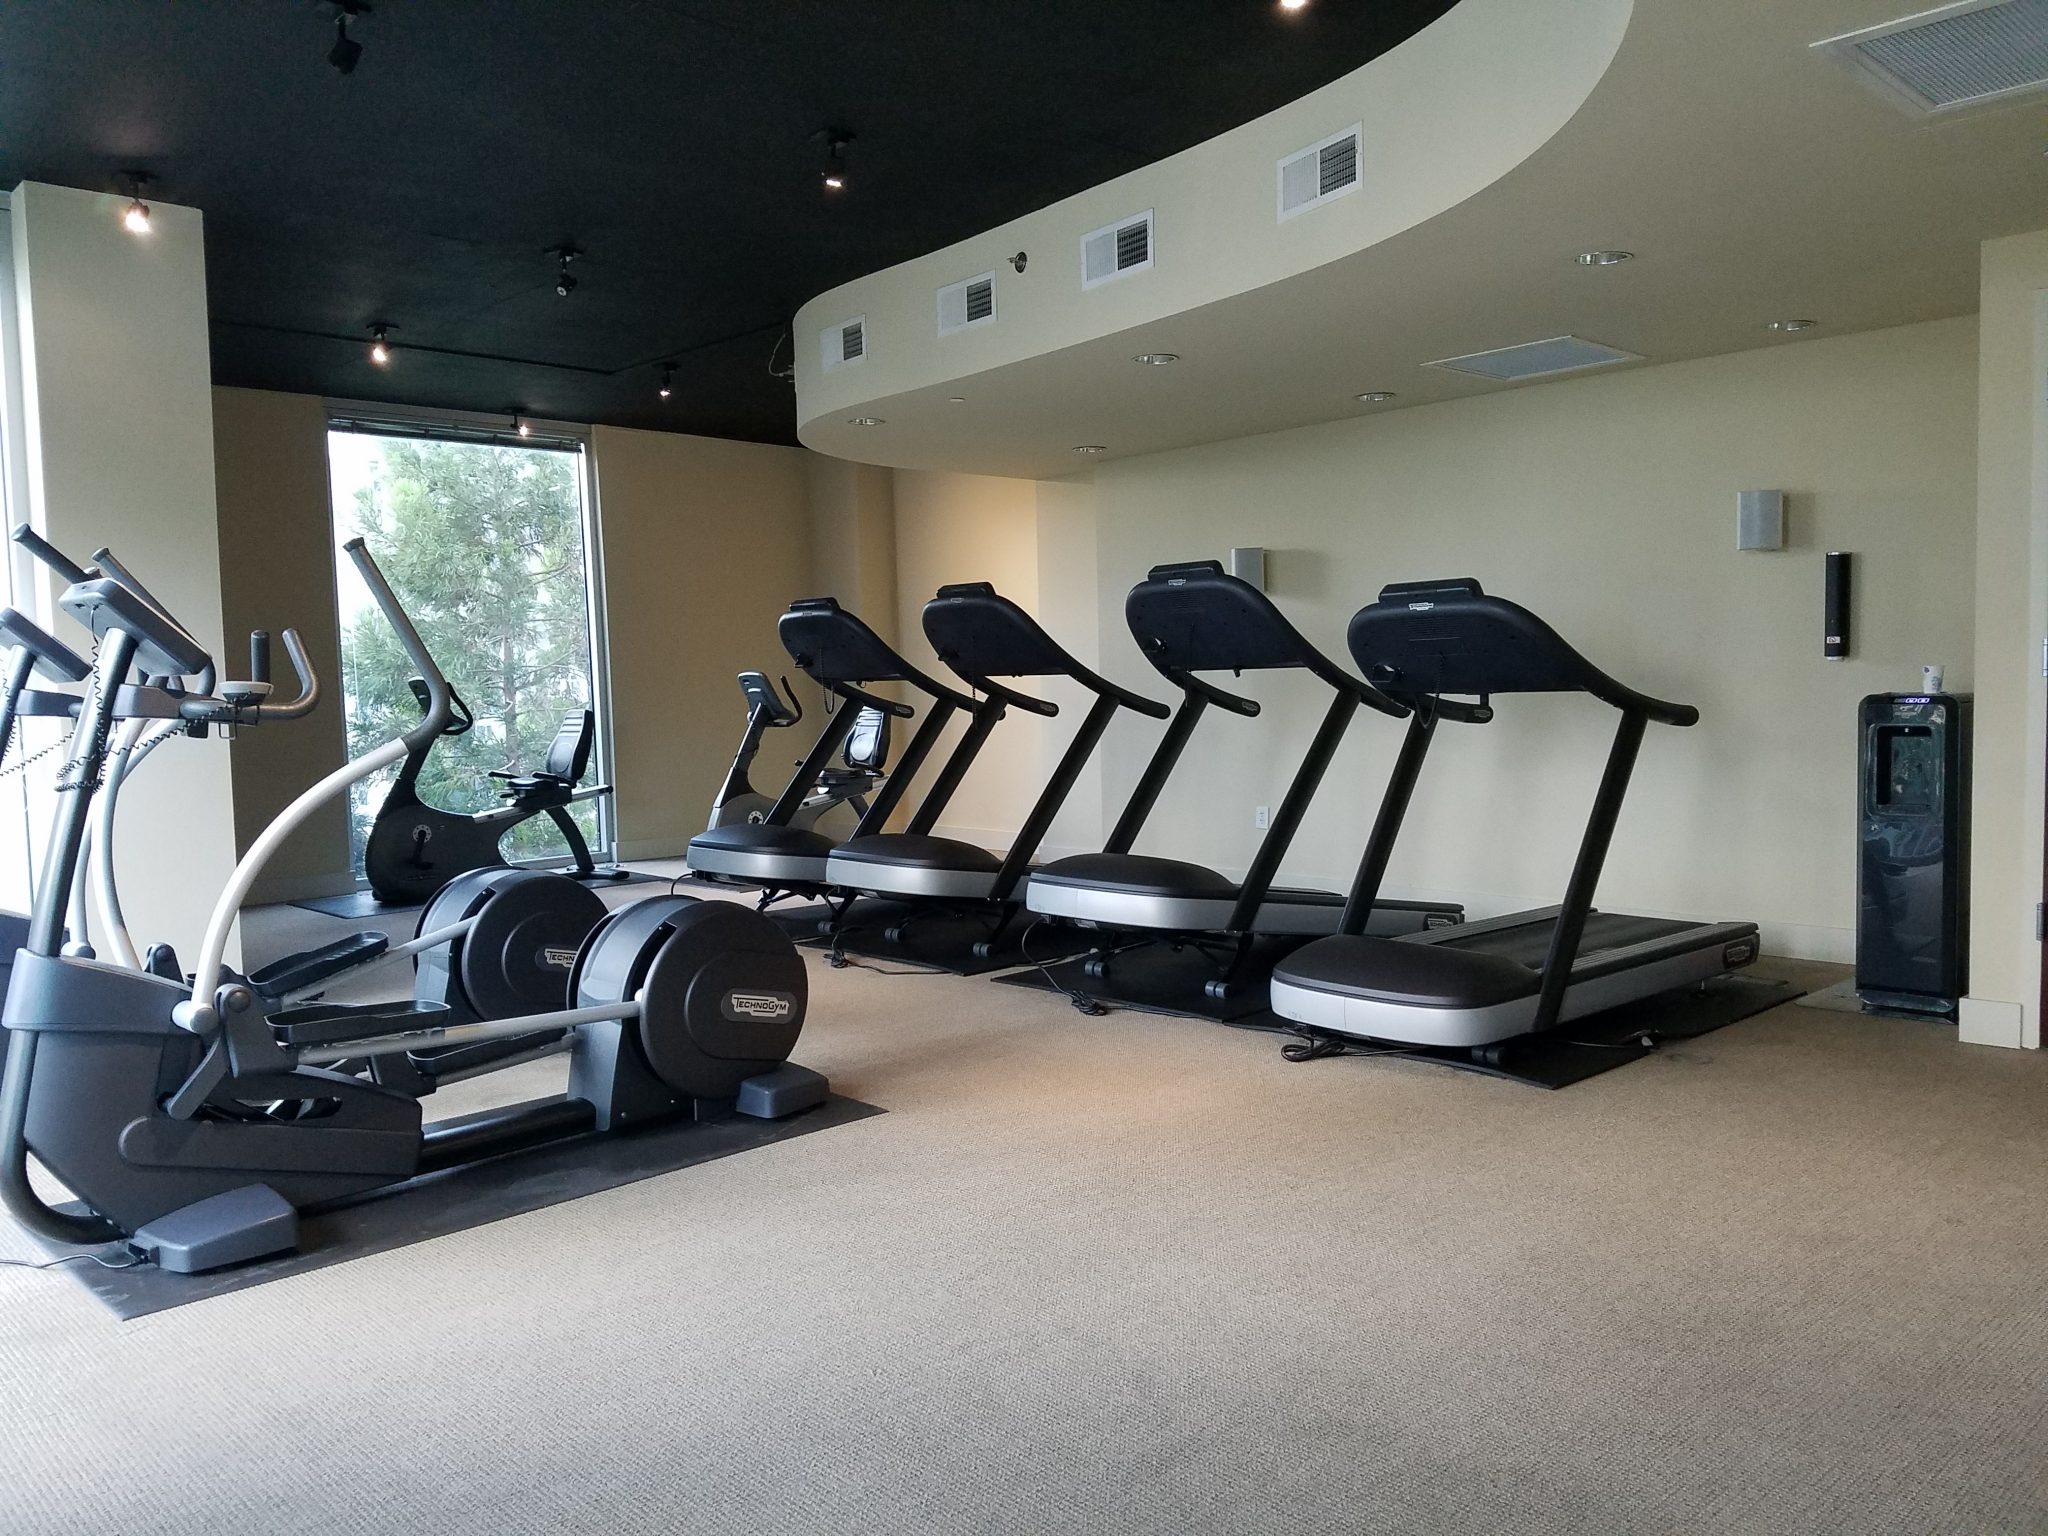 The Realm in Buckhead Gym and Fitness Room treadmills and elliptical machines